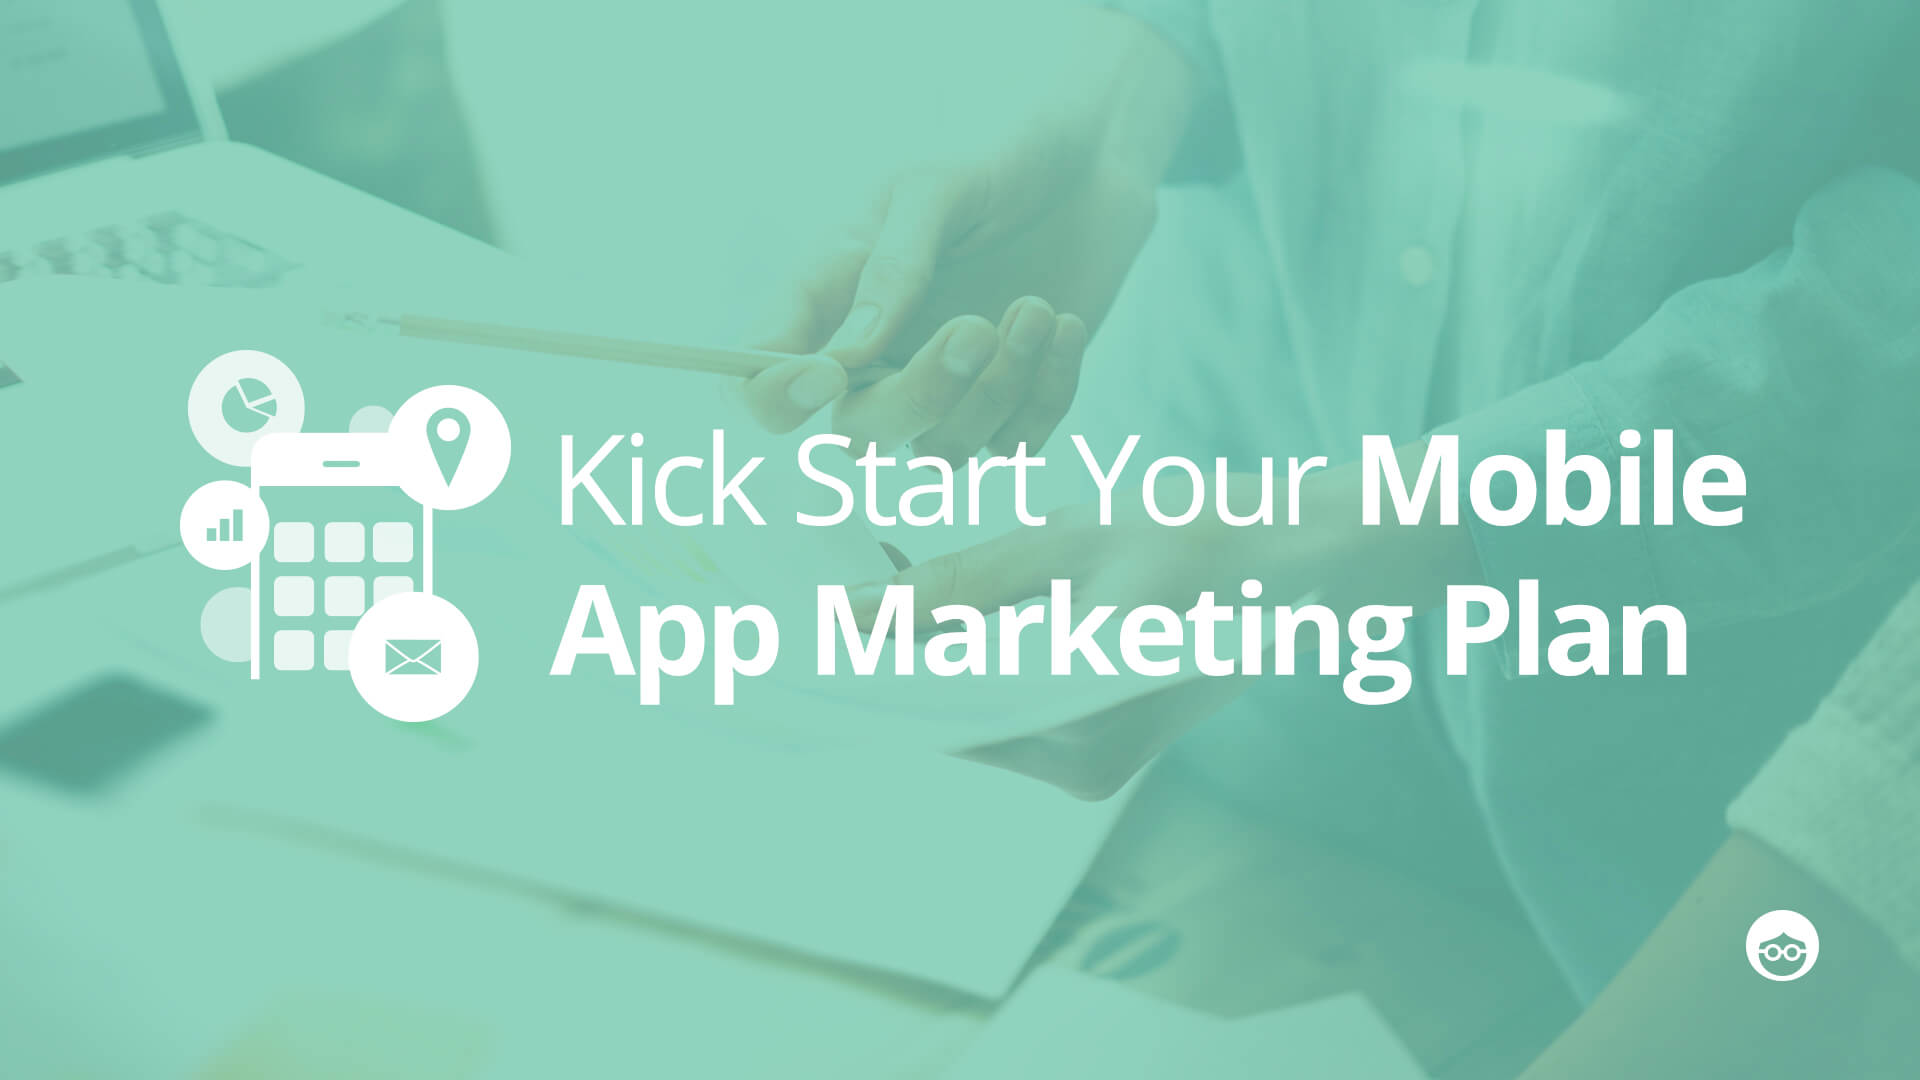 How to Build a Marketing Plan for Your Mobile App